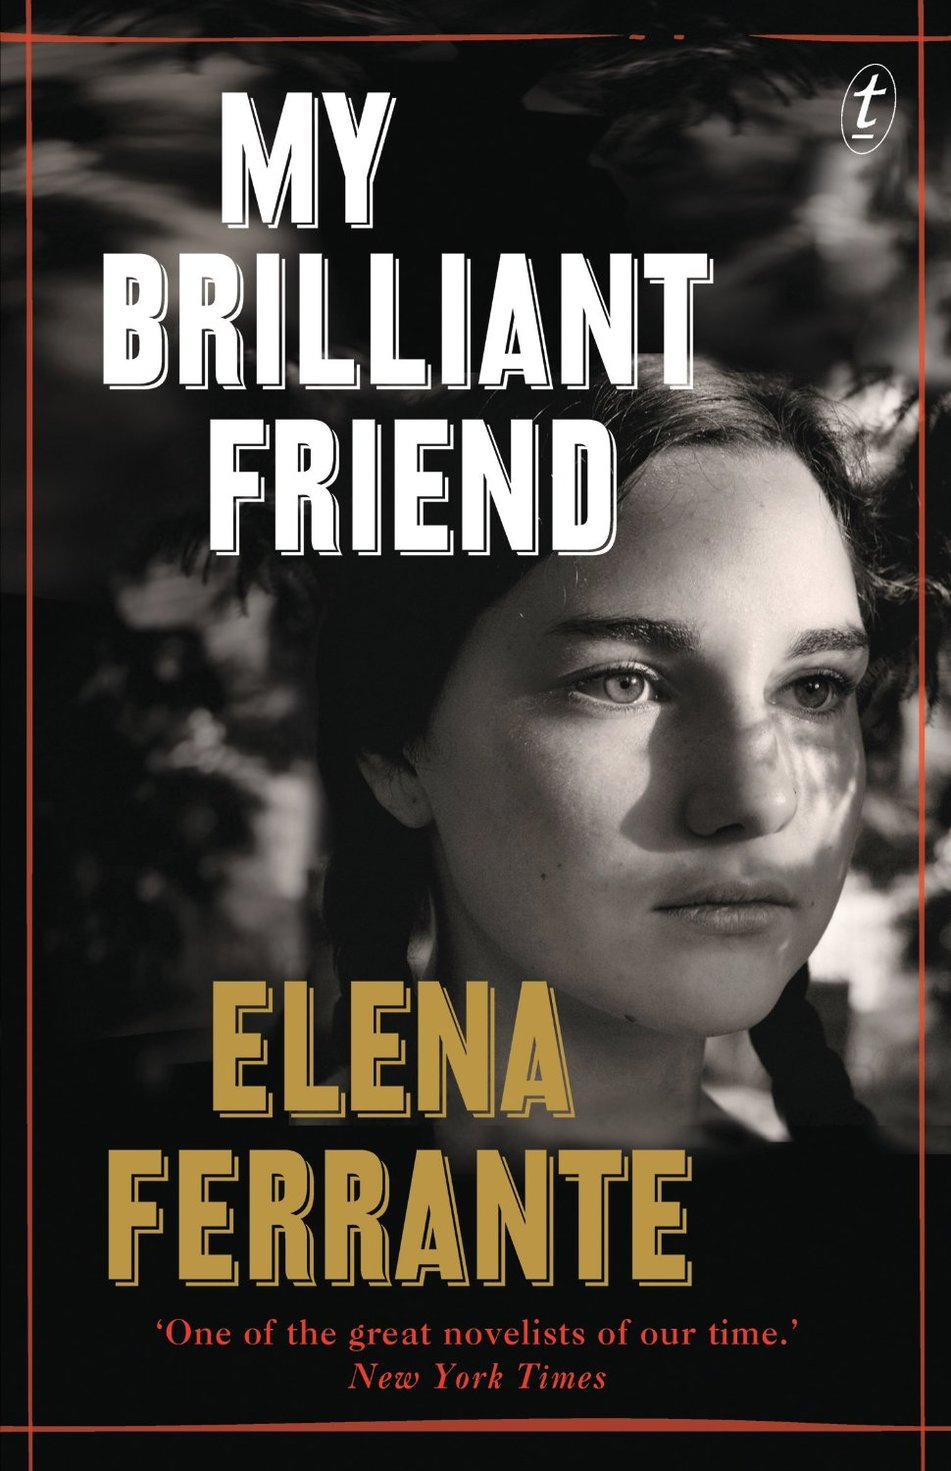 My Brilliant Friend - A modern masterpiece from one of Italy's most acclaimed authors, My Brilliant Friend is a rich, intense and generous hearted story about two friends, Elena and Lila. Ferrante's inimitable style lends itself perfectly to a meticulous portrait of these two women that is also the story of a nation and a touching meditation on the nature of friendship. Through the lives of these two women, Ferrante tells the story of a neighbourhood, a city and a country as it is transformed in ways that, in turn, also transform the relationship between her two protagonists.Book locations coming soon